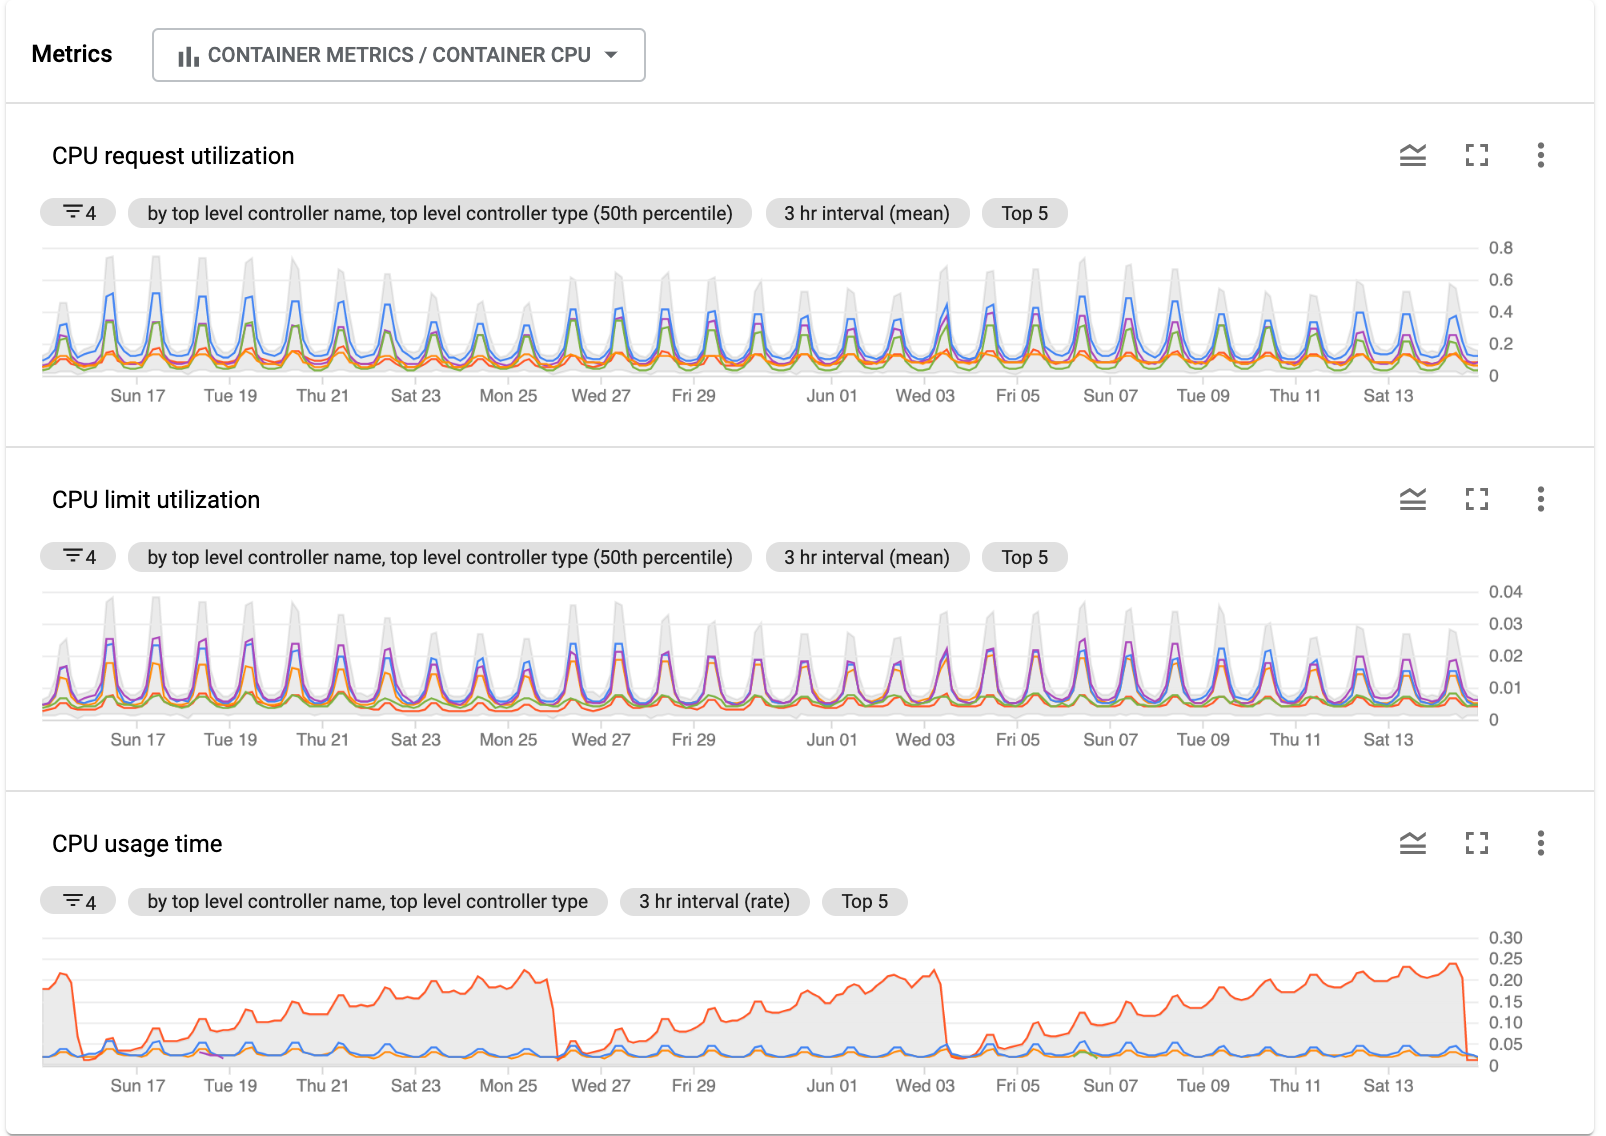 **Metrics** shows charts for selected service metrics.